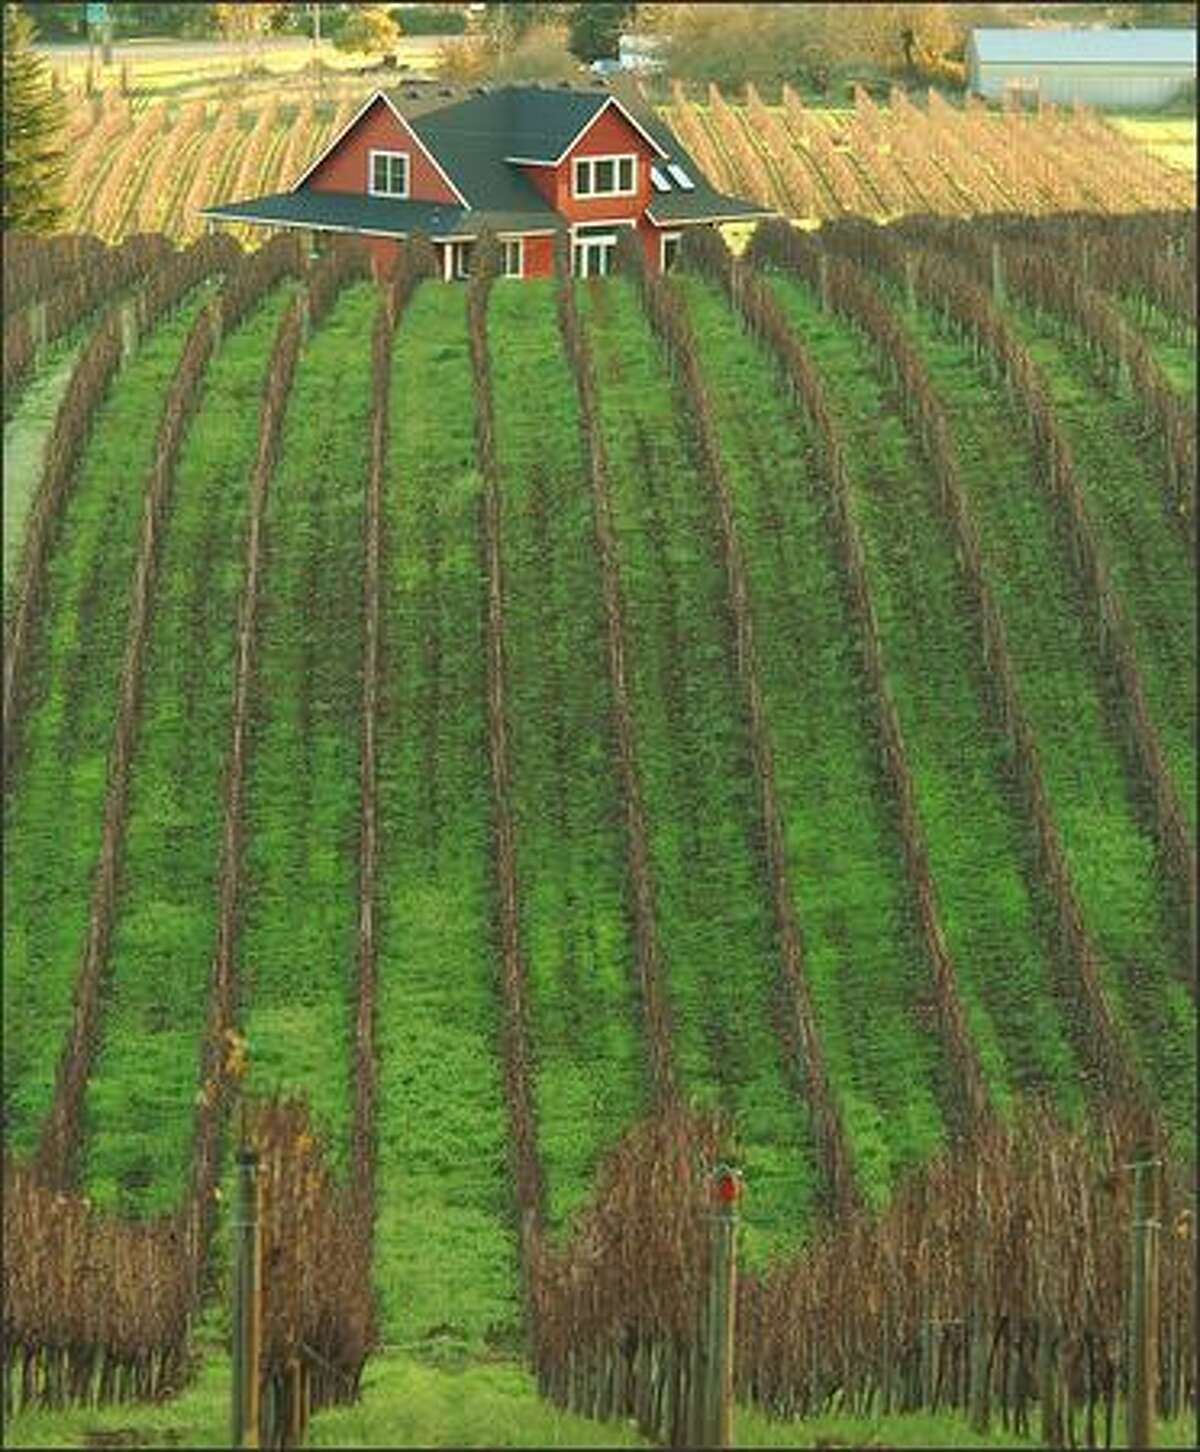 McMinnville is at the southwest corner of the prolific Yamhill County wine-growing region. The Sokol Blosser Winery vineyard is pictured.